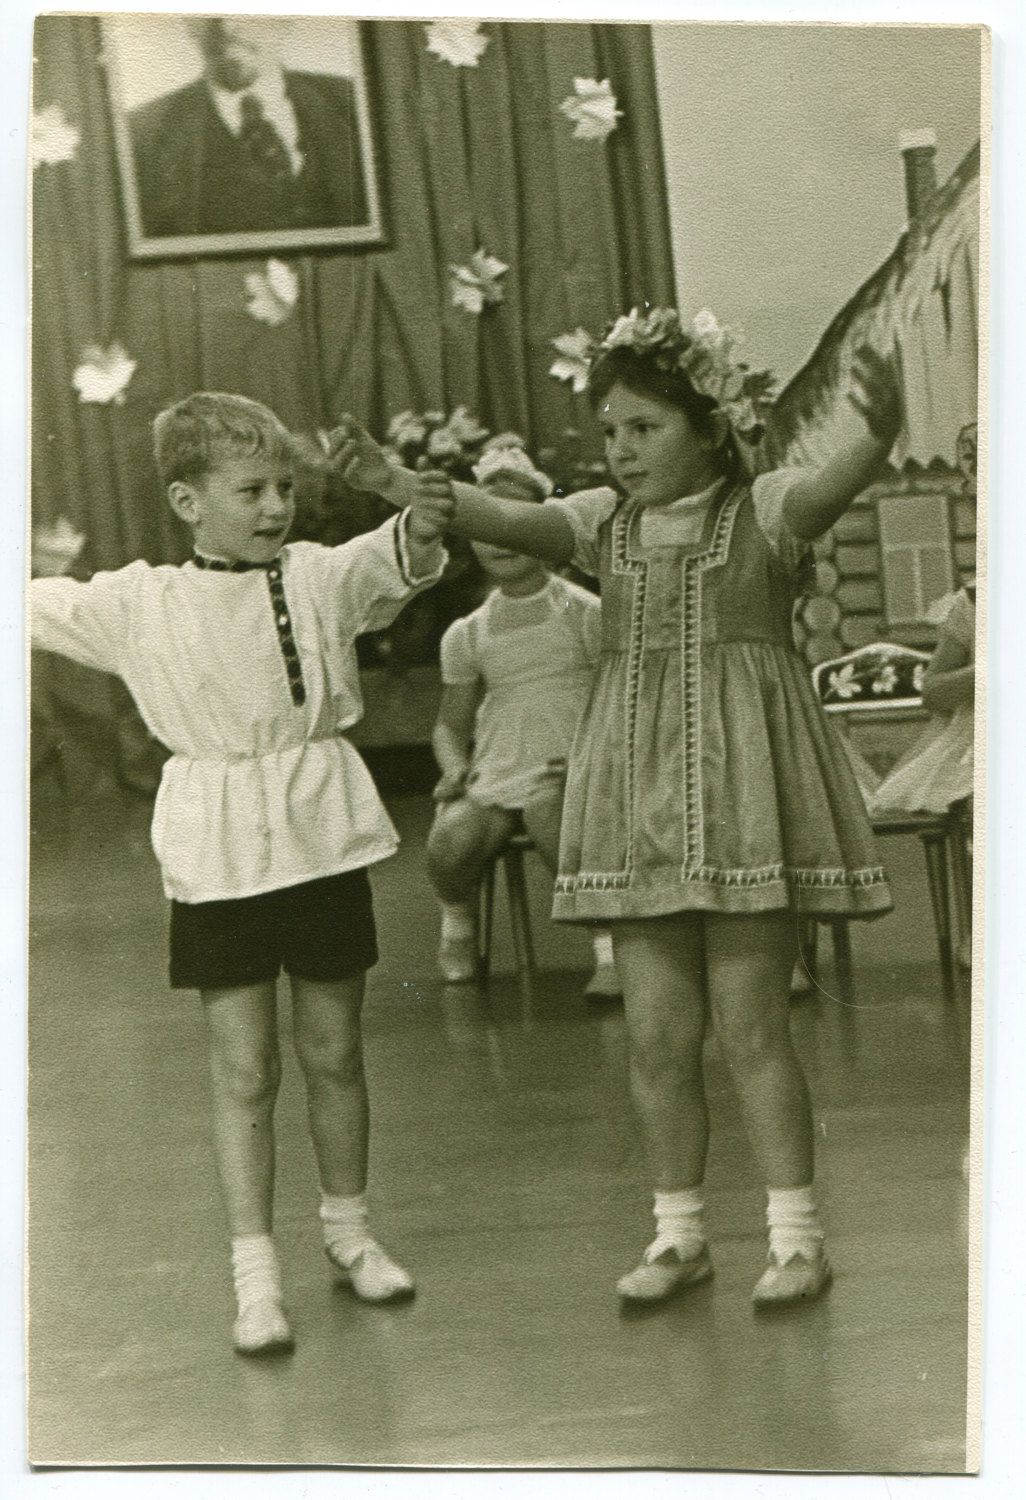 Boy and girl in Russian national costumes dancing Russia Soviet Union school party 1971 fashion ORIGINAL vintage photo LARGE by PhotoMemoriesLane on Etsy